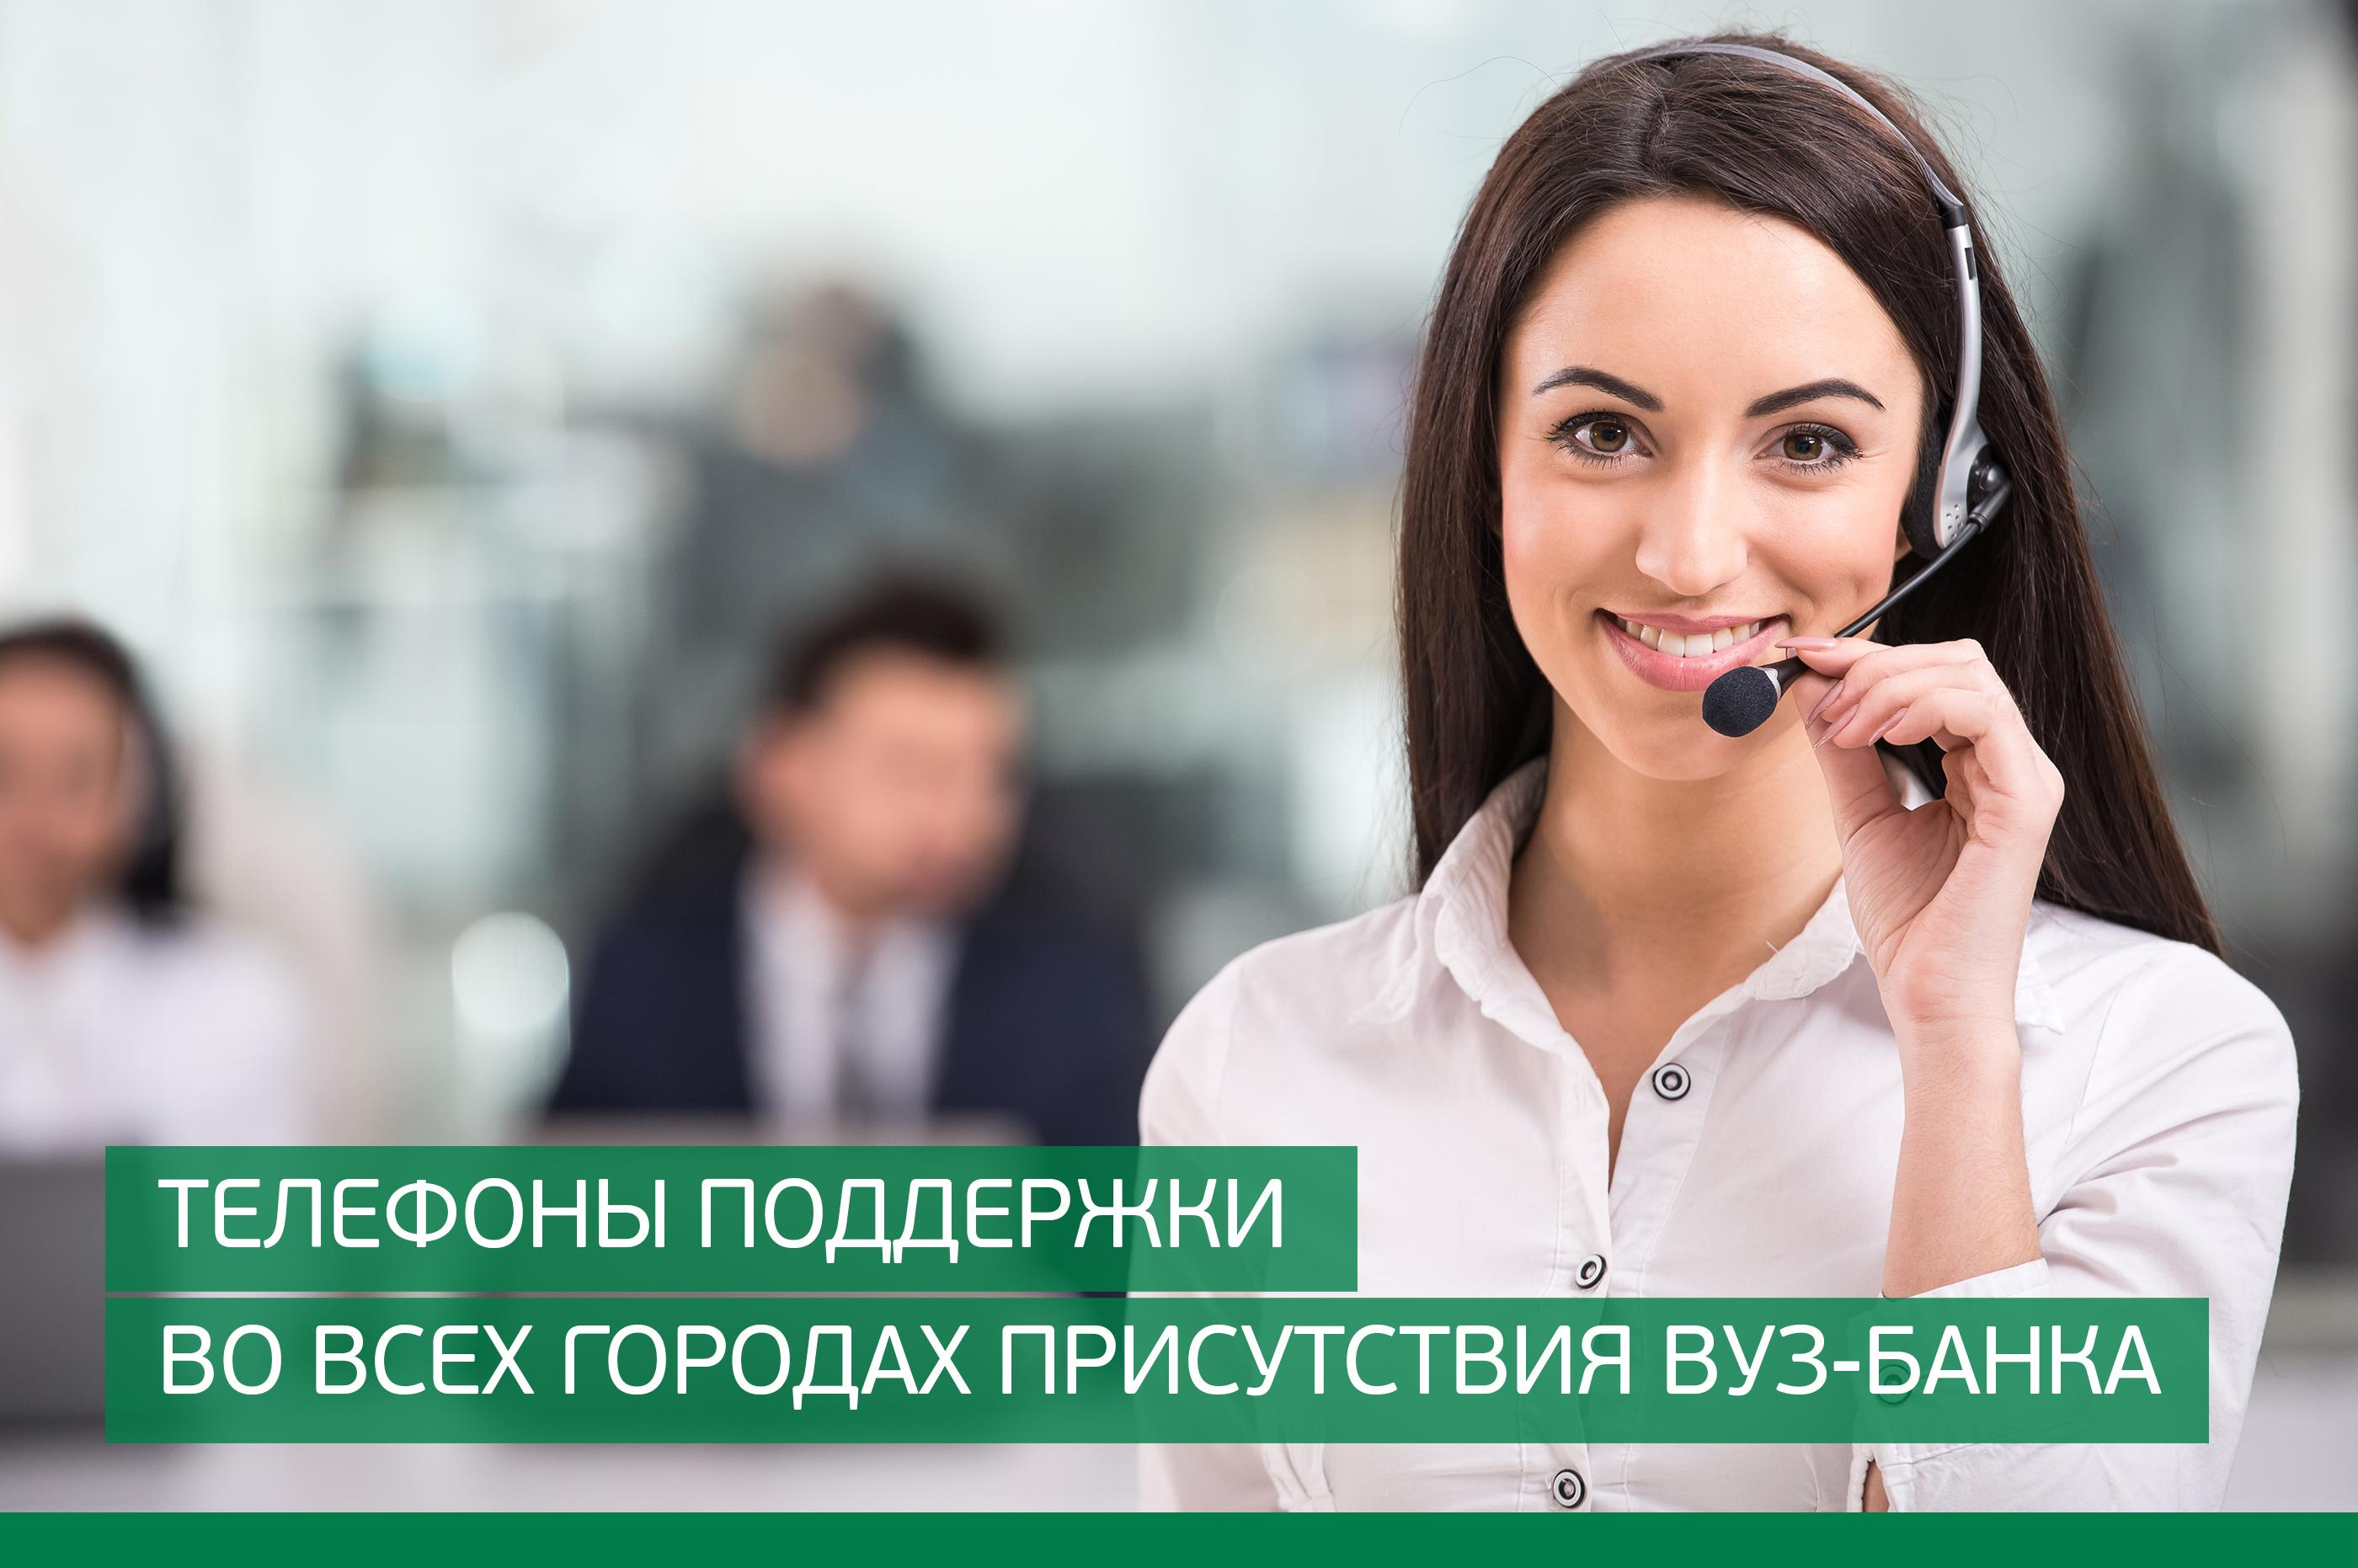 bank customer service call center